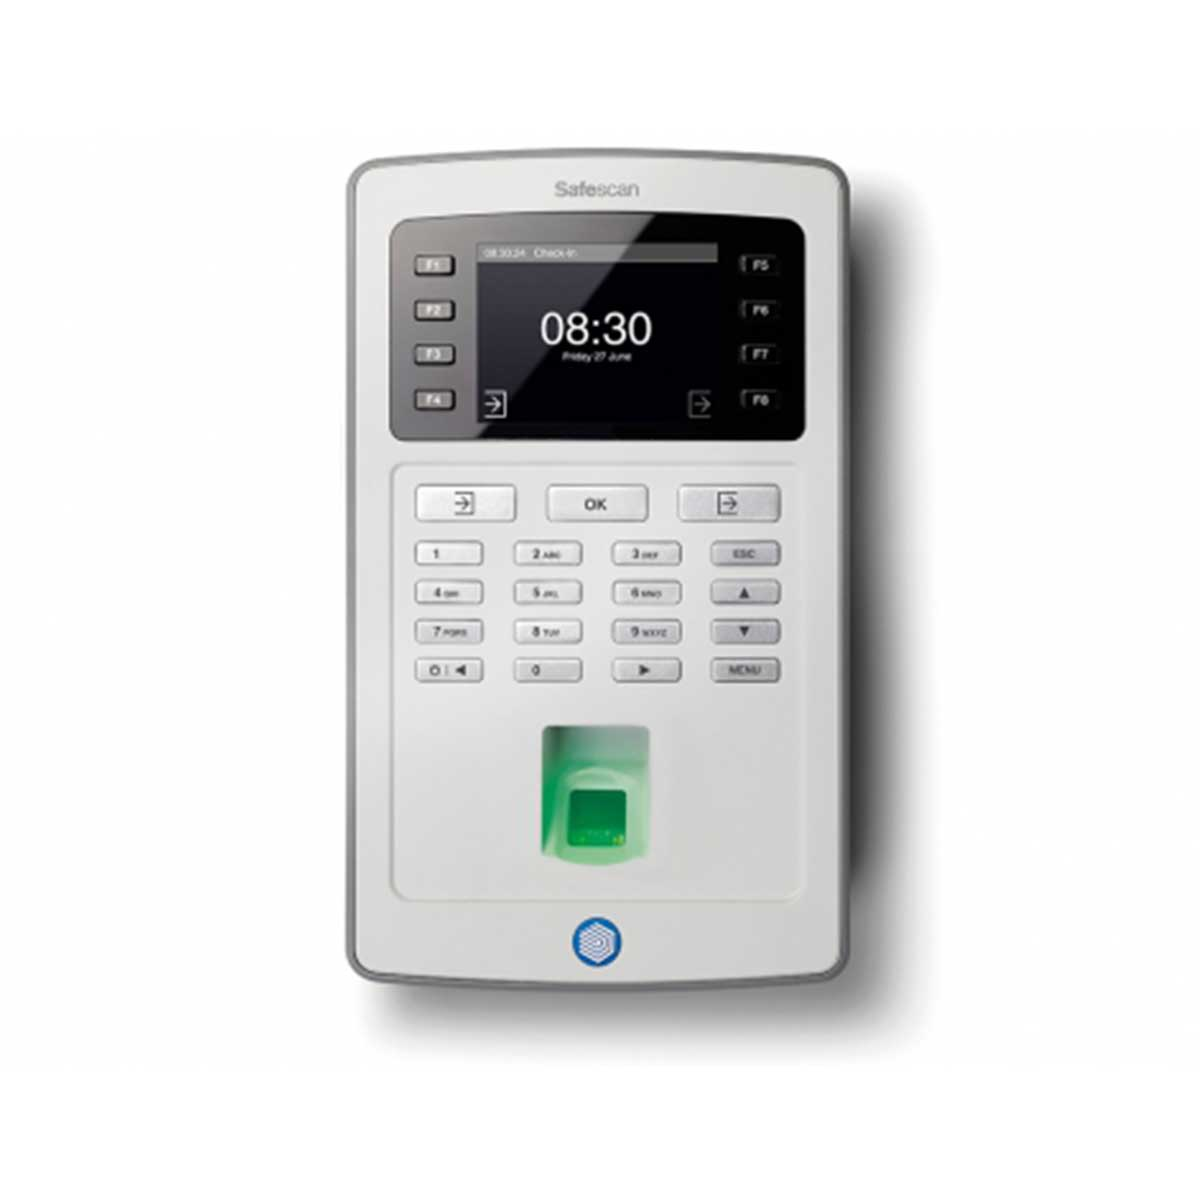 Safescan TA-8035 Time Attendance System and Software with RFID and Fingerprint Reader and Wi-Fi - Grey